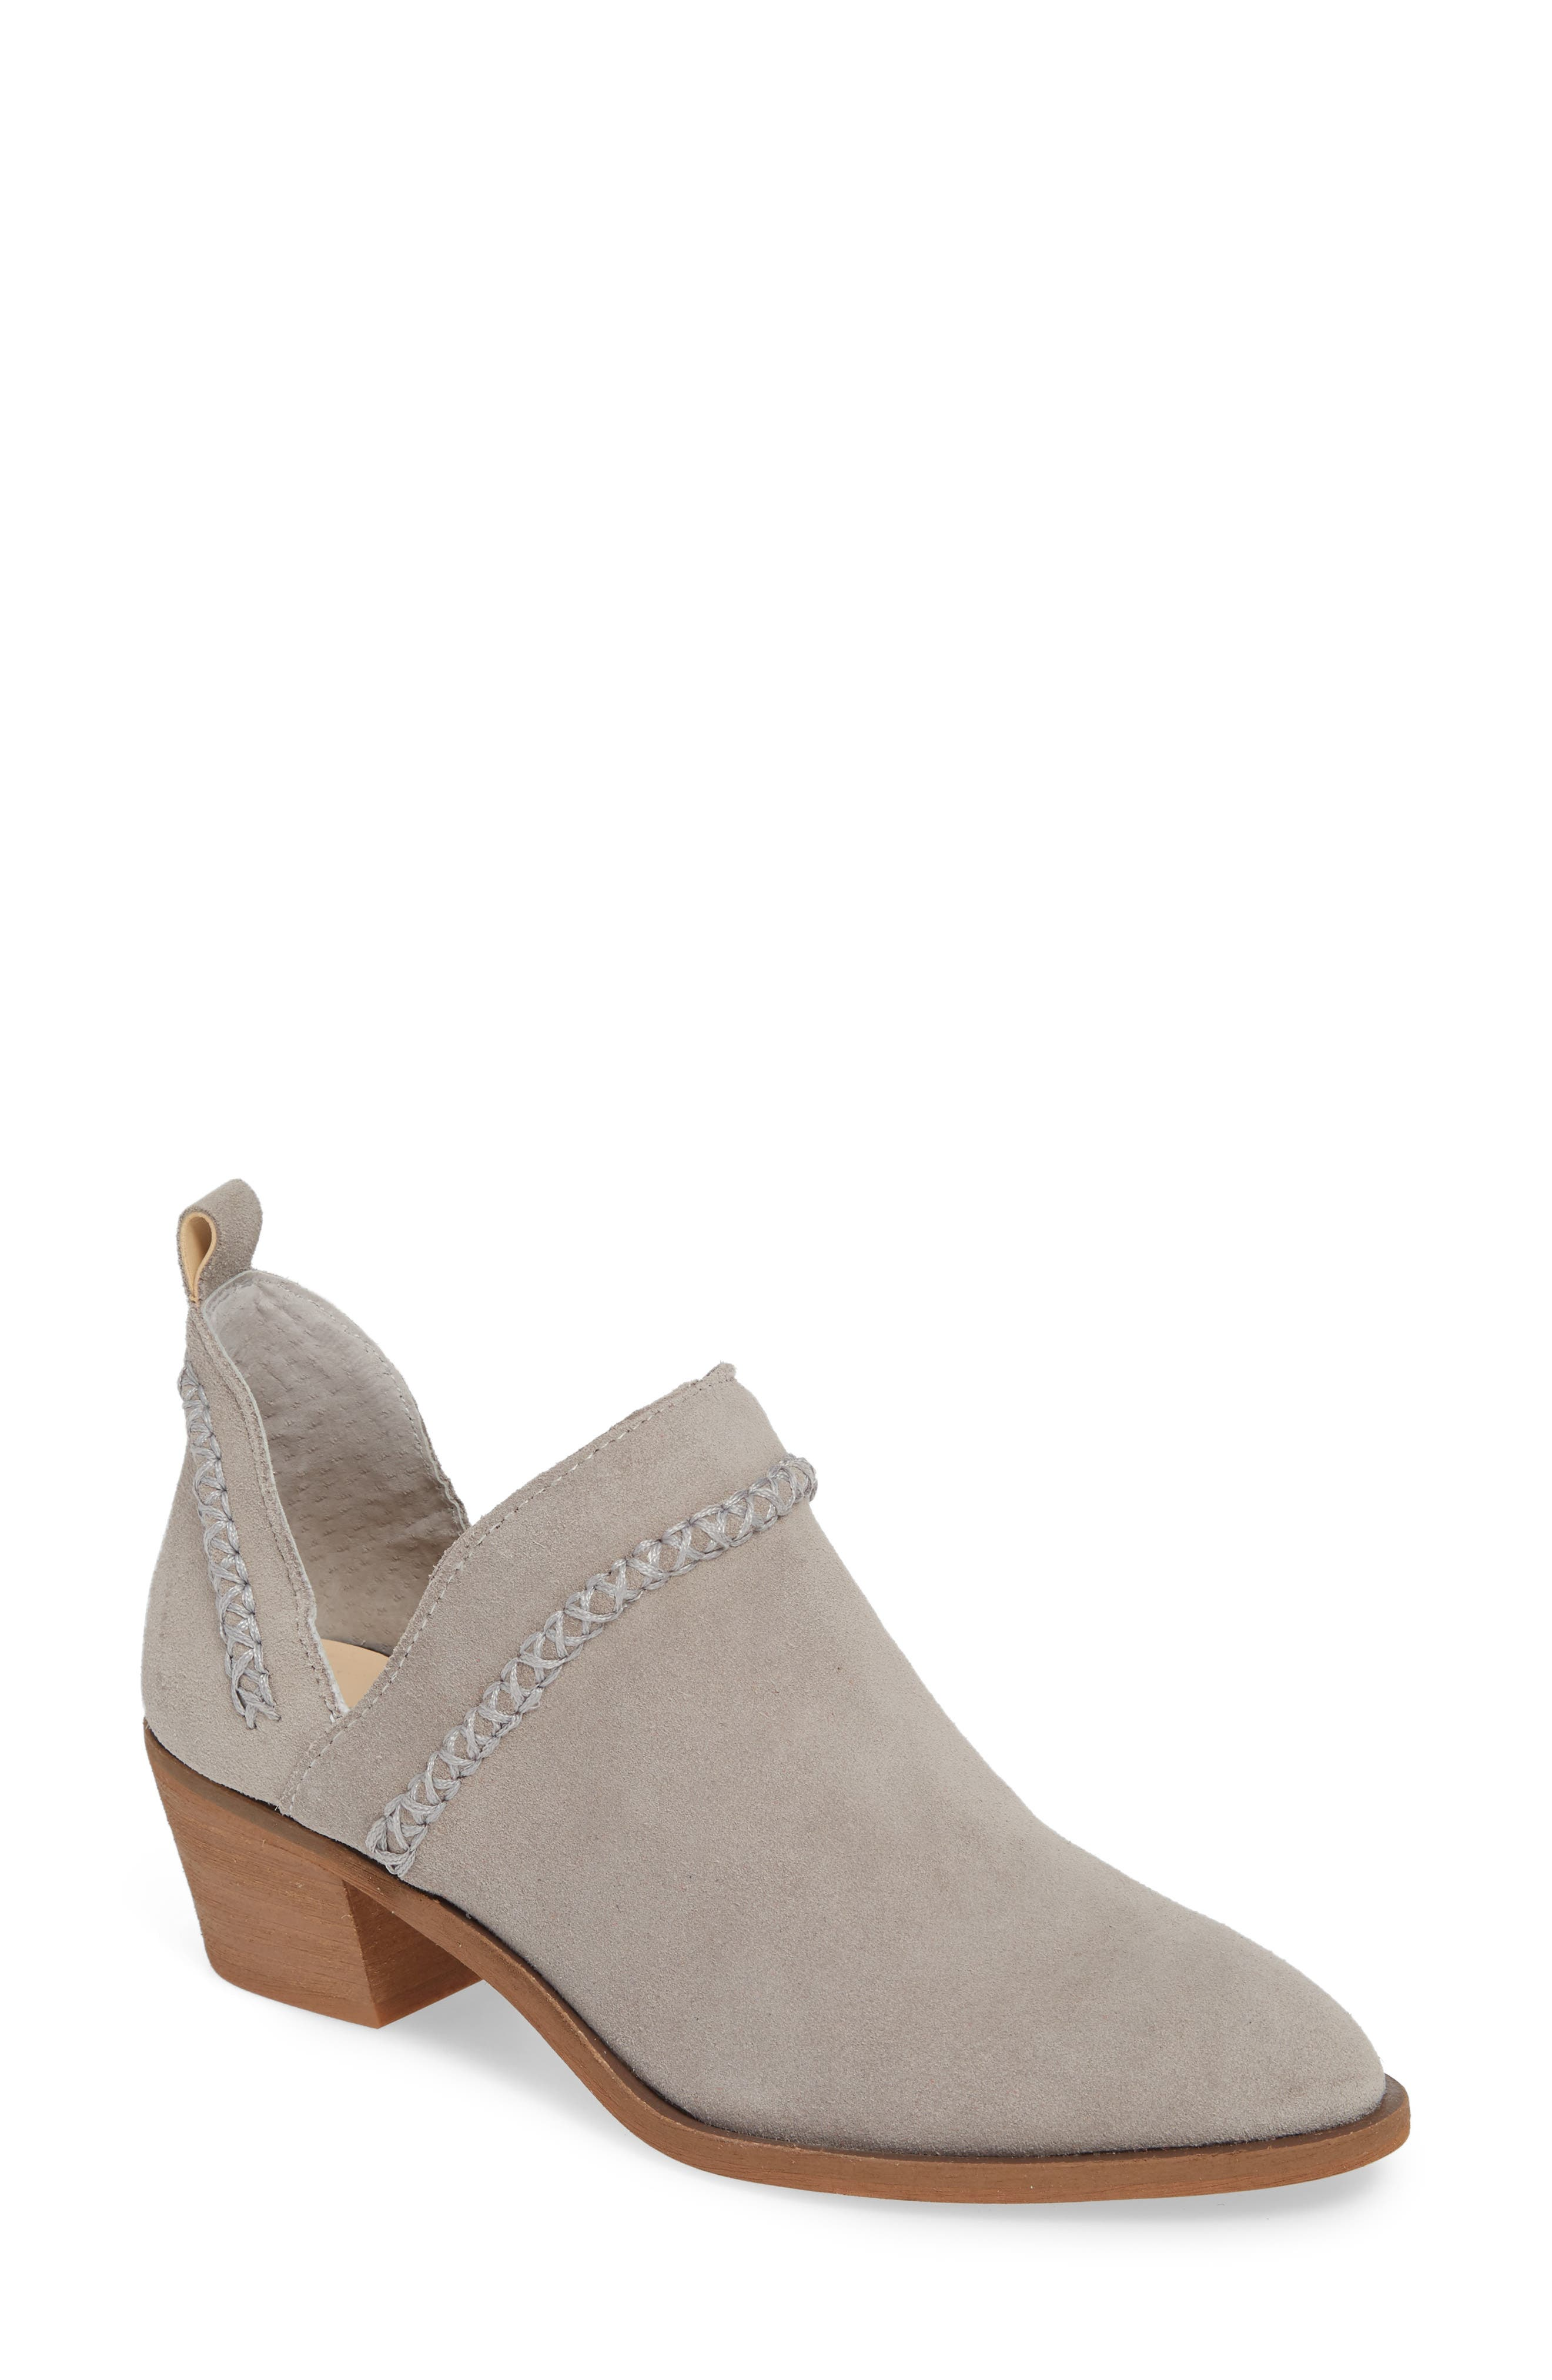 SOLE SOCIETY,                             Nikkie Bootie,                             Main thumbnail 1, color,                             SOFT GREY SUEDE